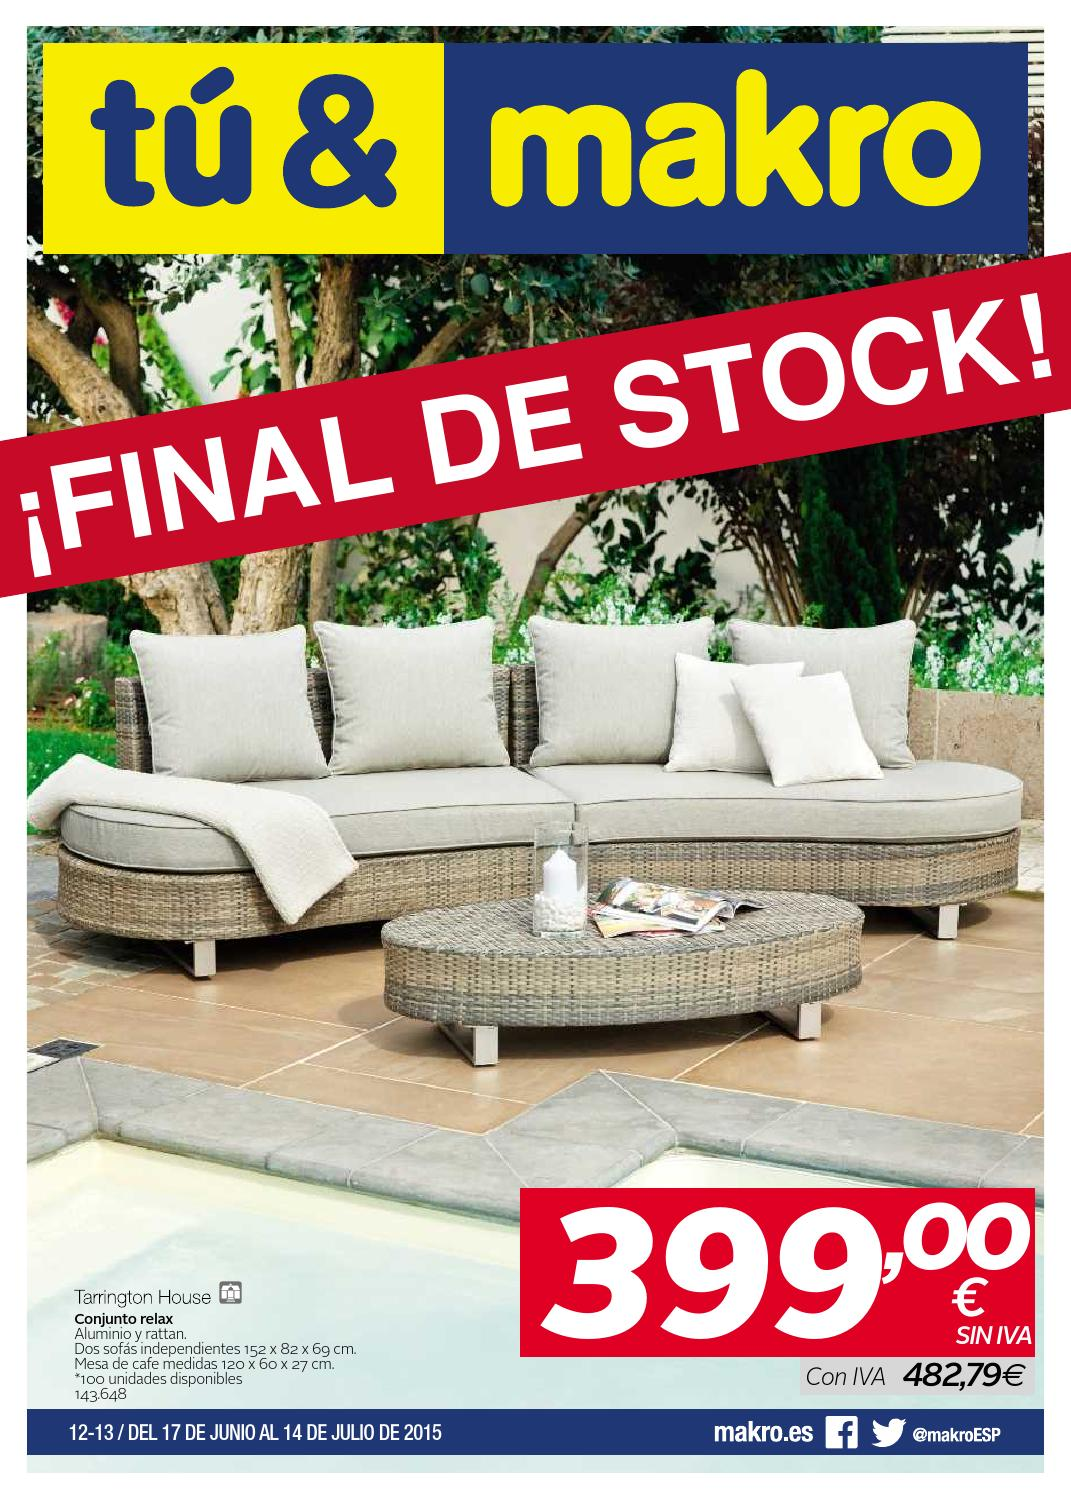 Makro espana ofertas final de stock peninsula by for Mobiliario de jardin ofertas